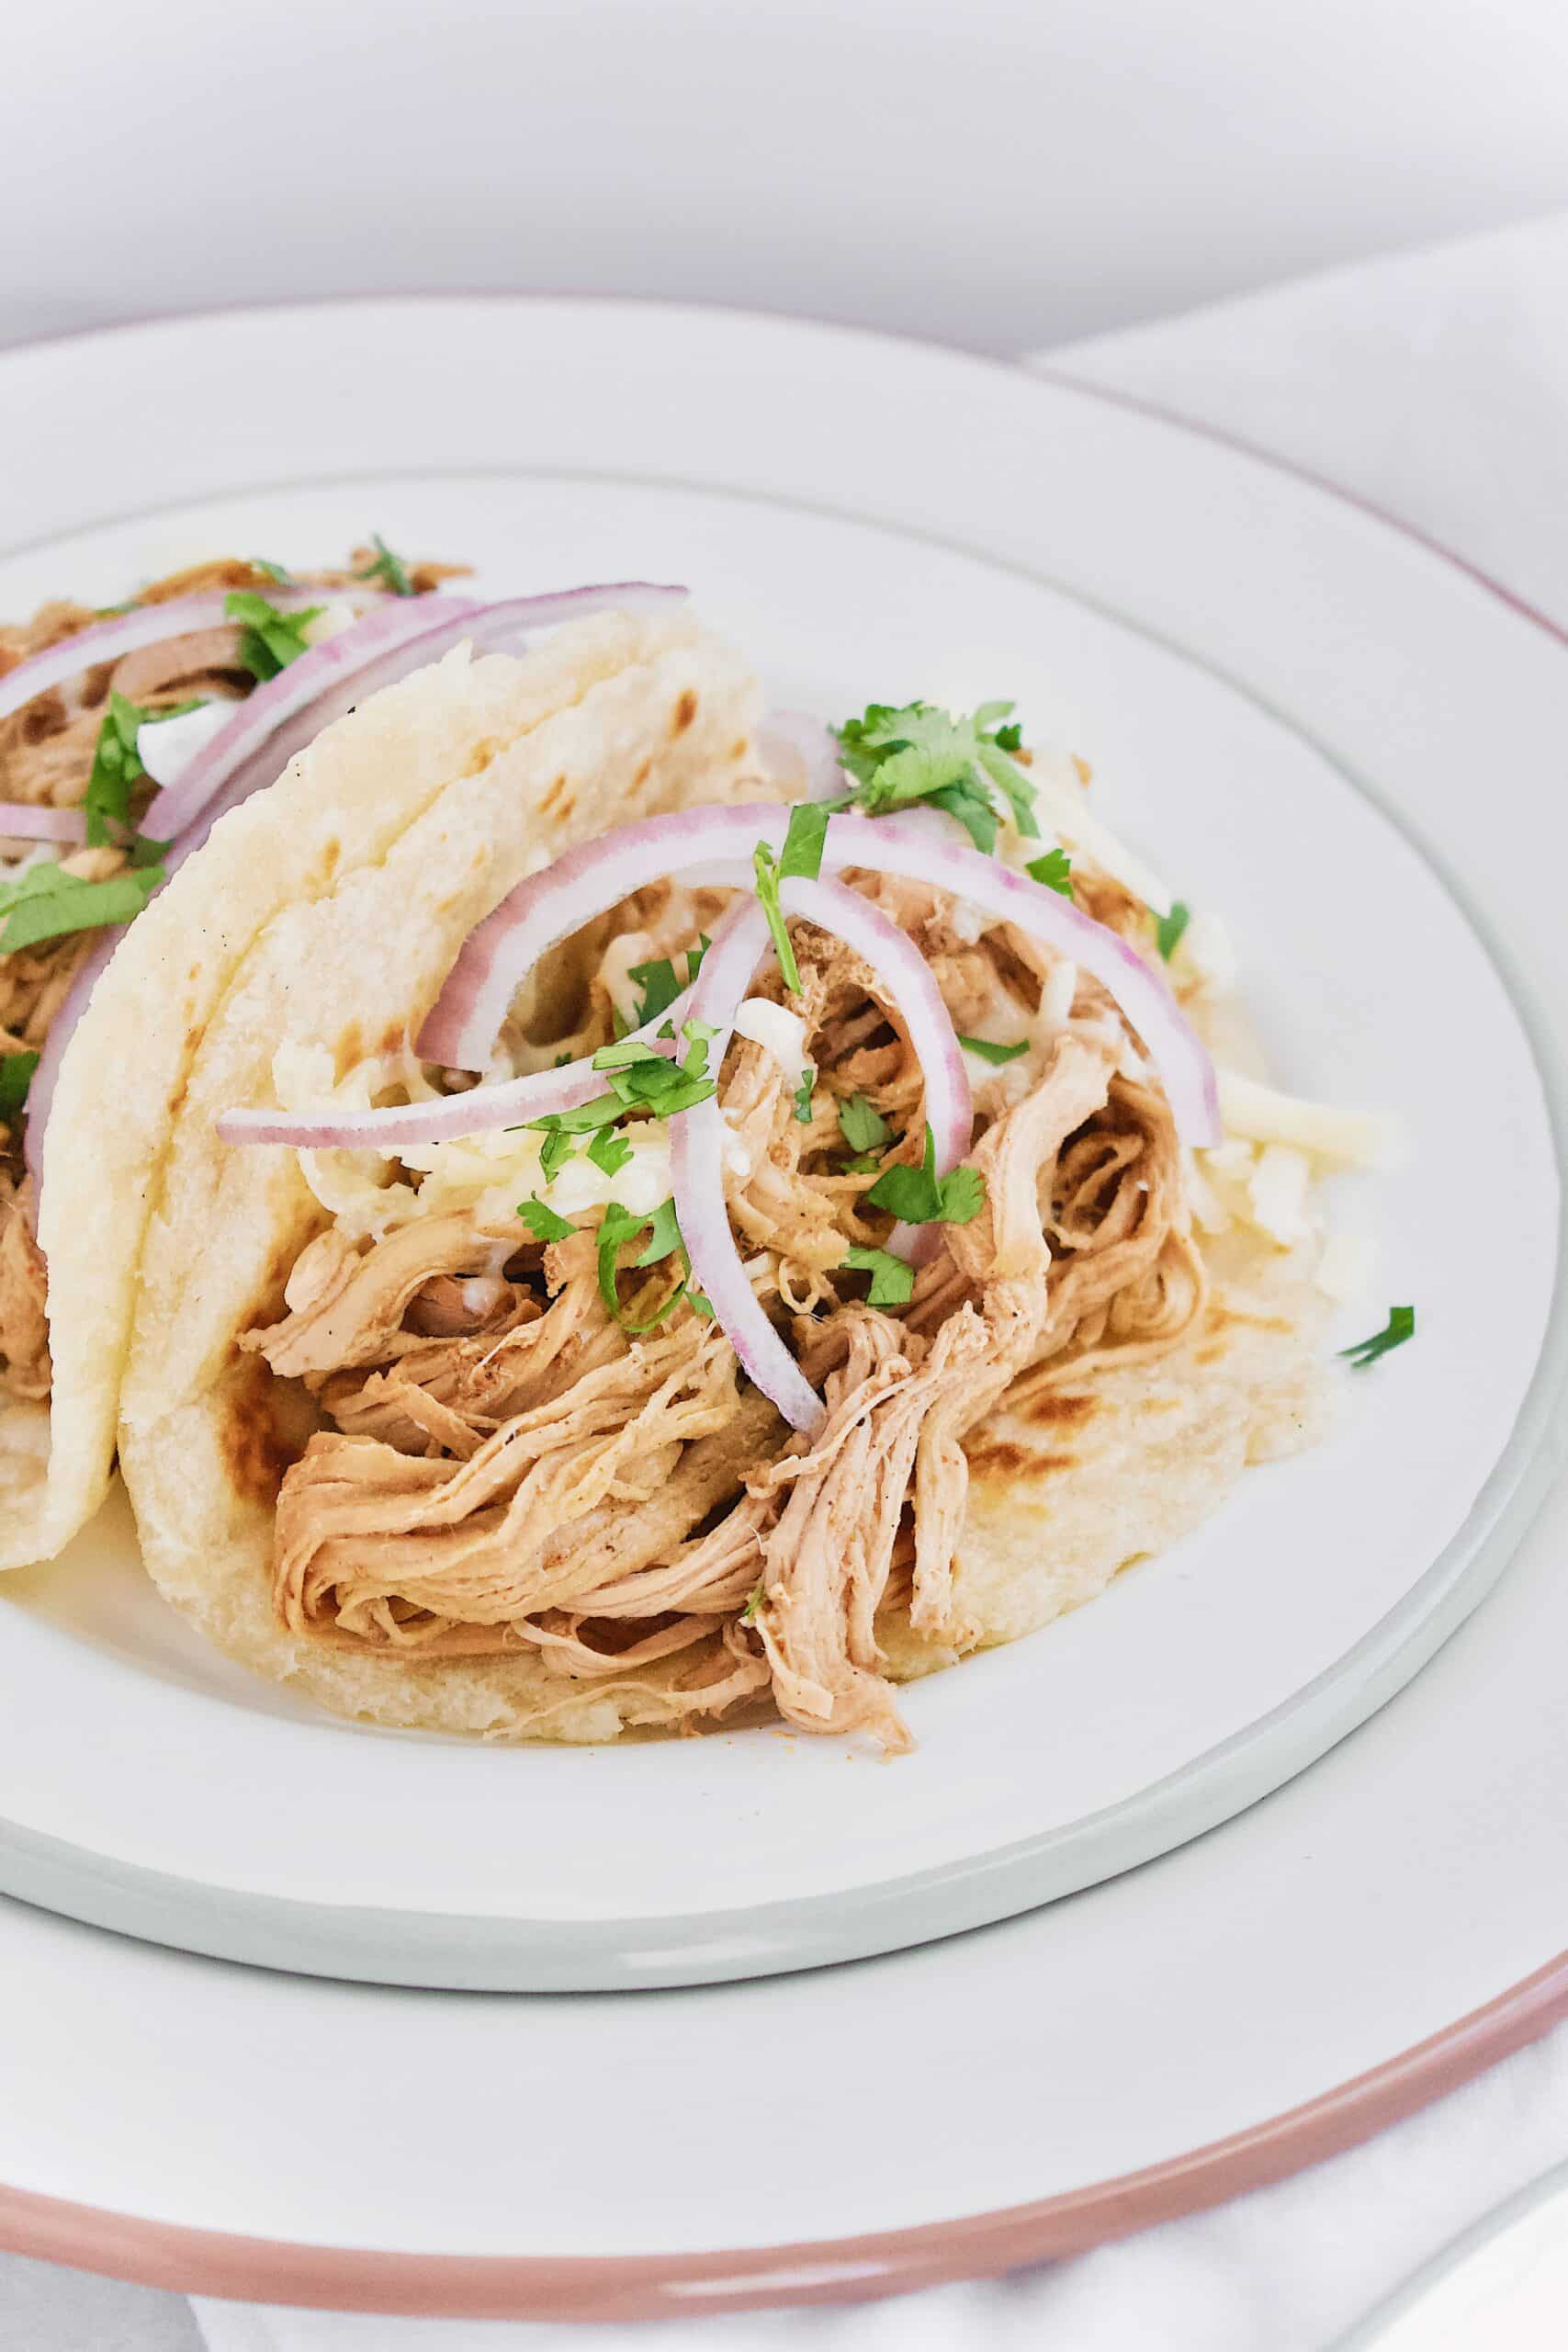 Joanna Gaines recipe for Pulled Pork Street Tacos